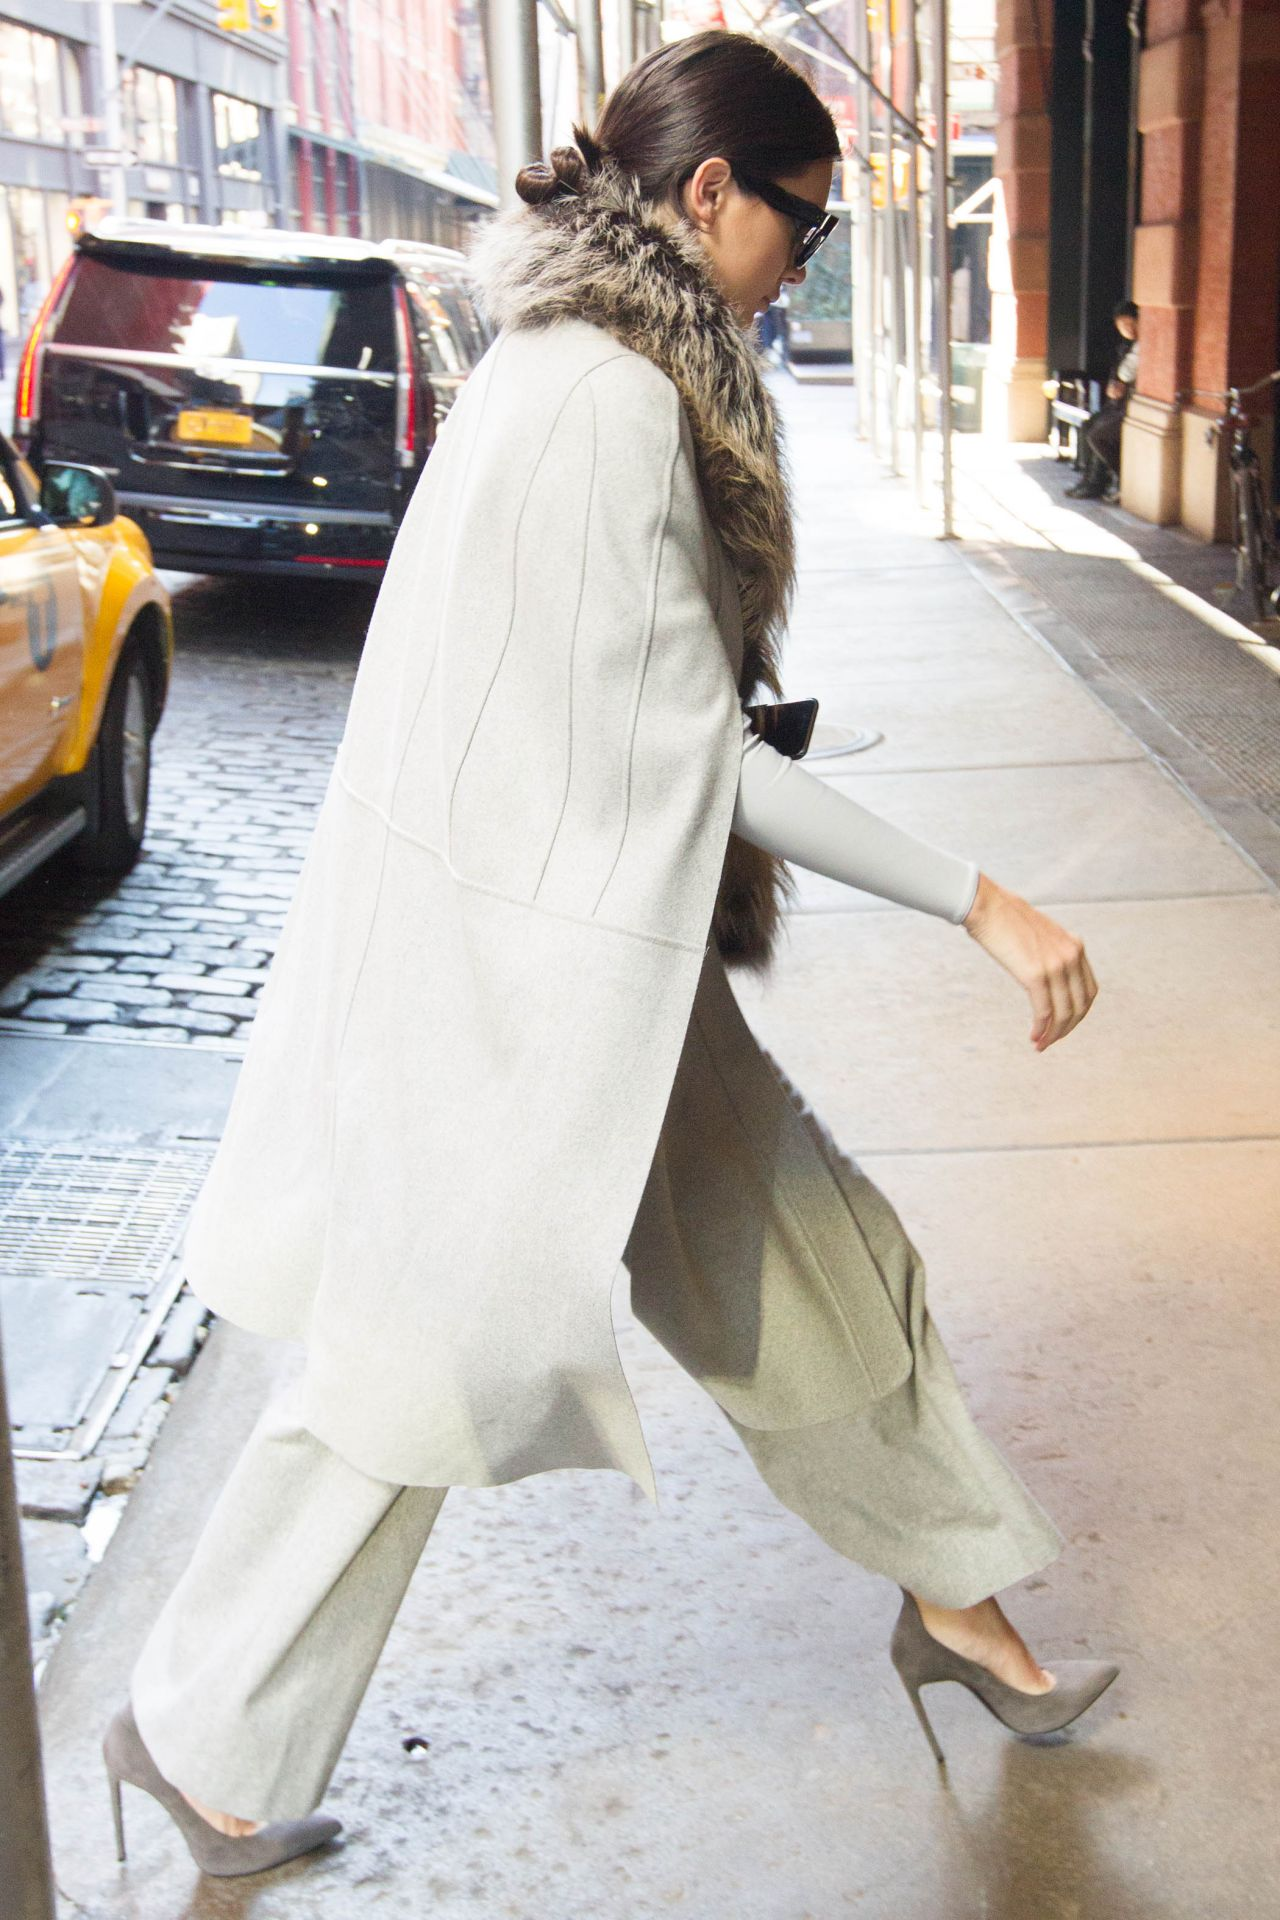 kendall-jenner-street-fashion-out-in-soho-nyc-october-2015_8